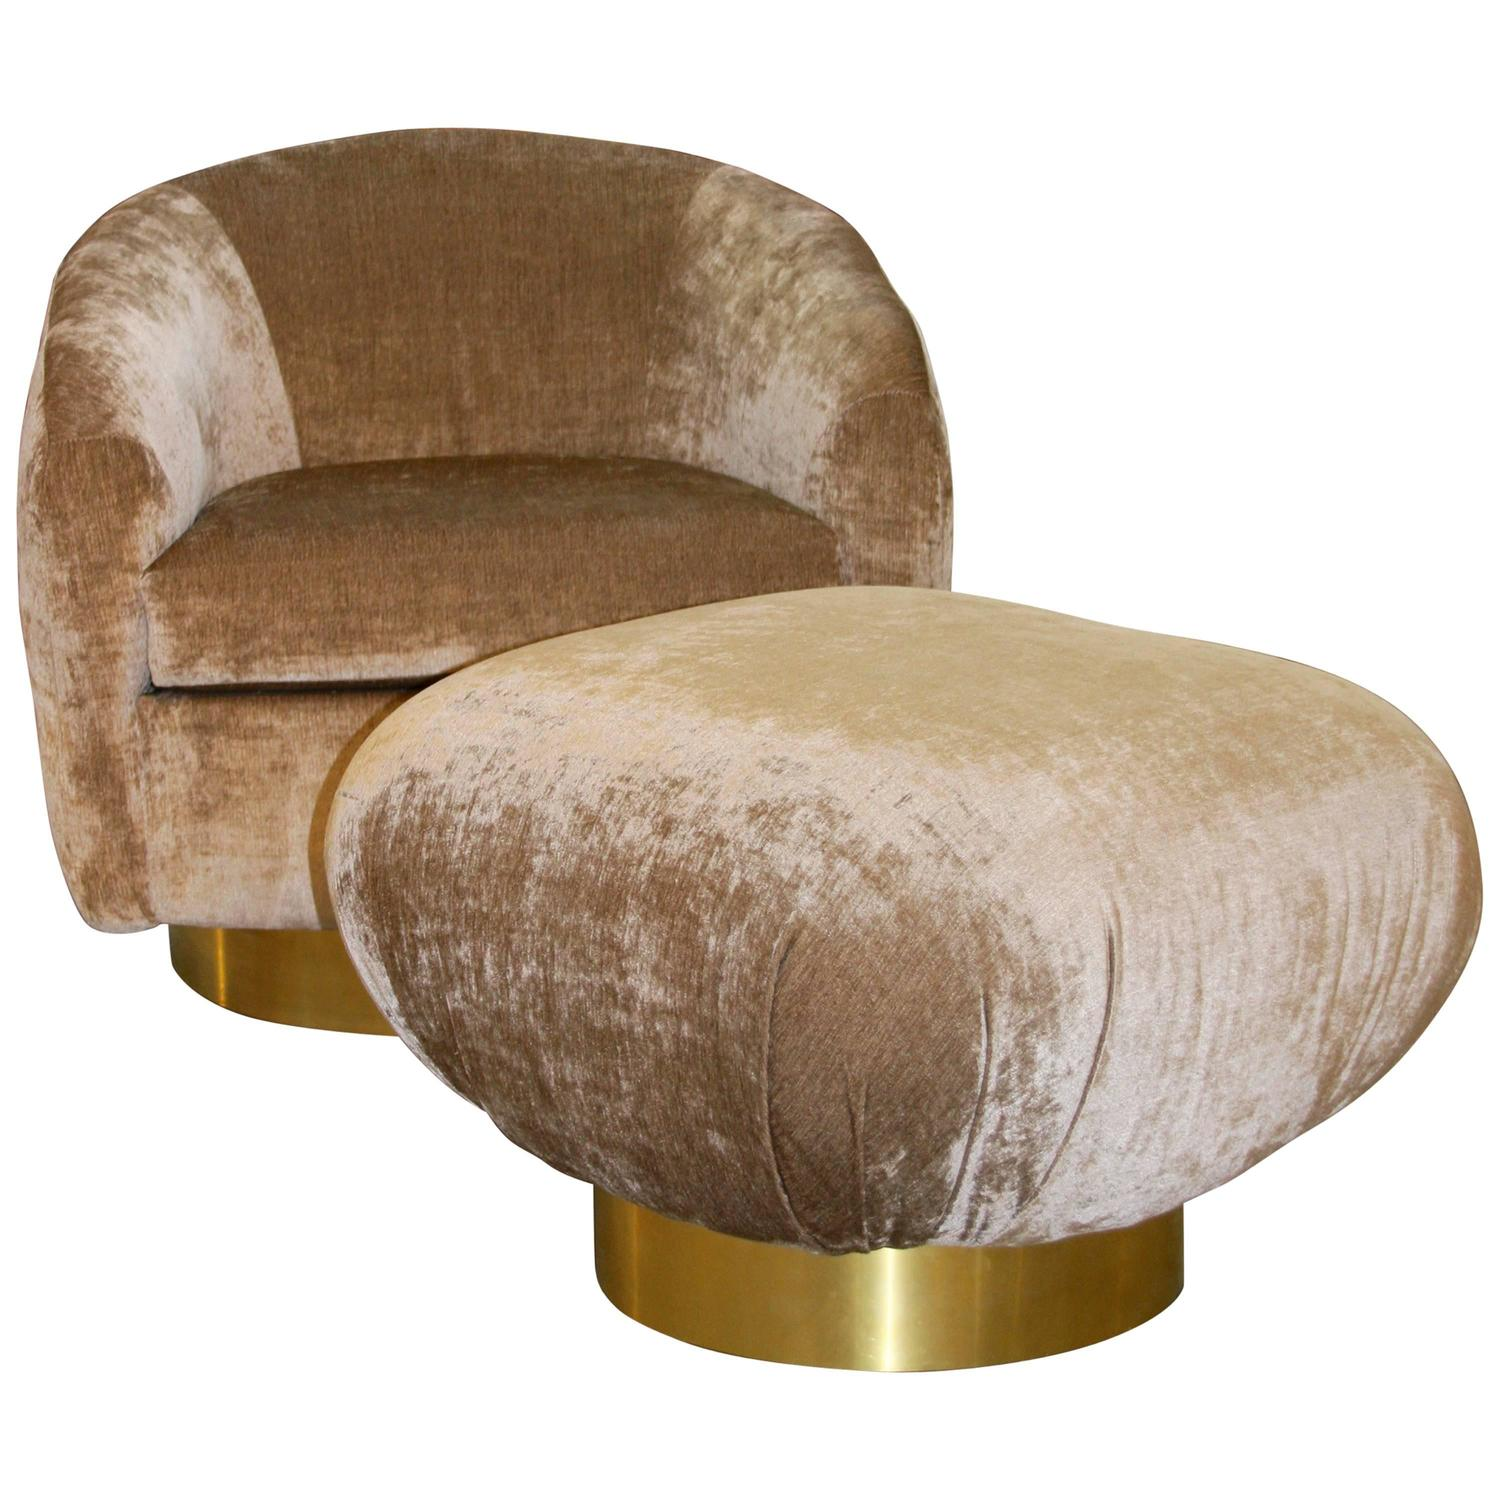 swivel chair online india chairs that convert to beds preview and ottoman with brass banded